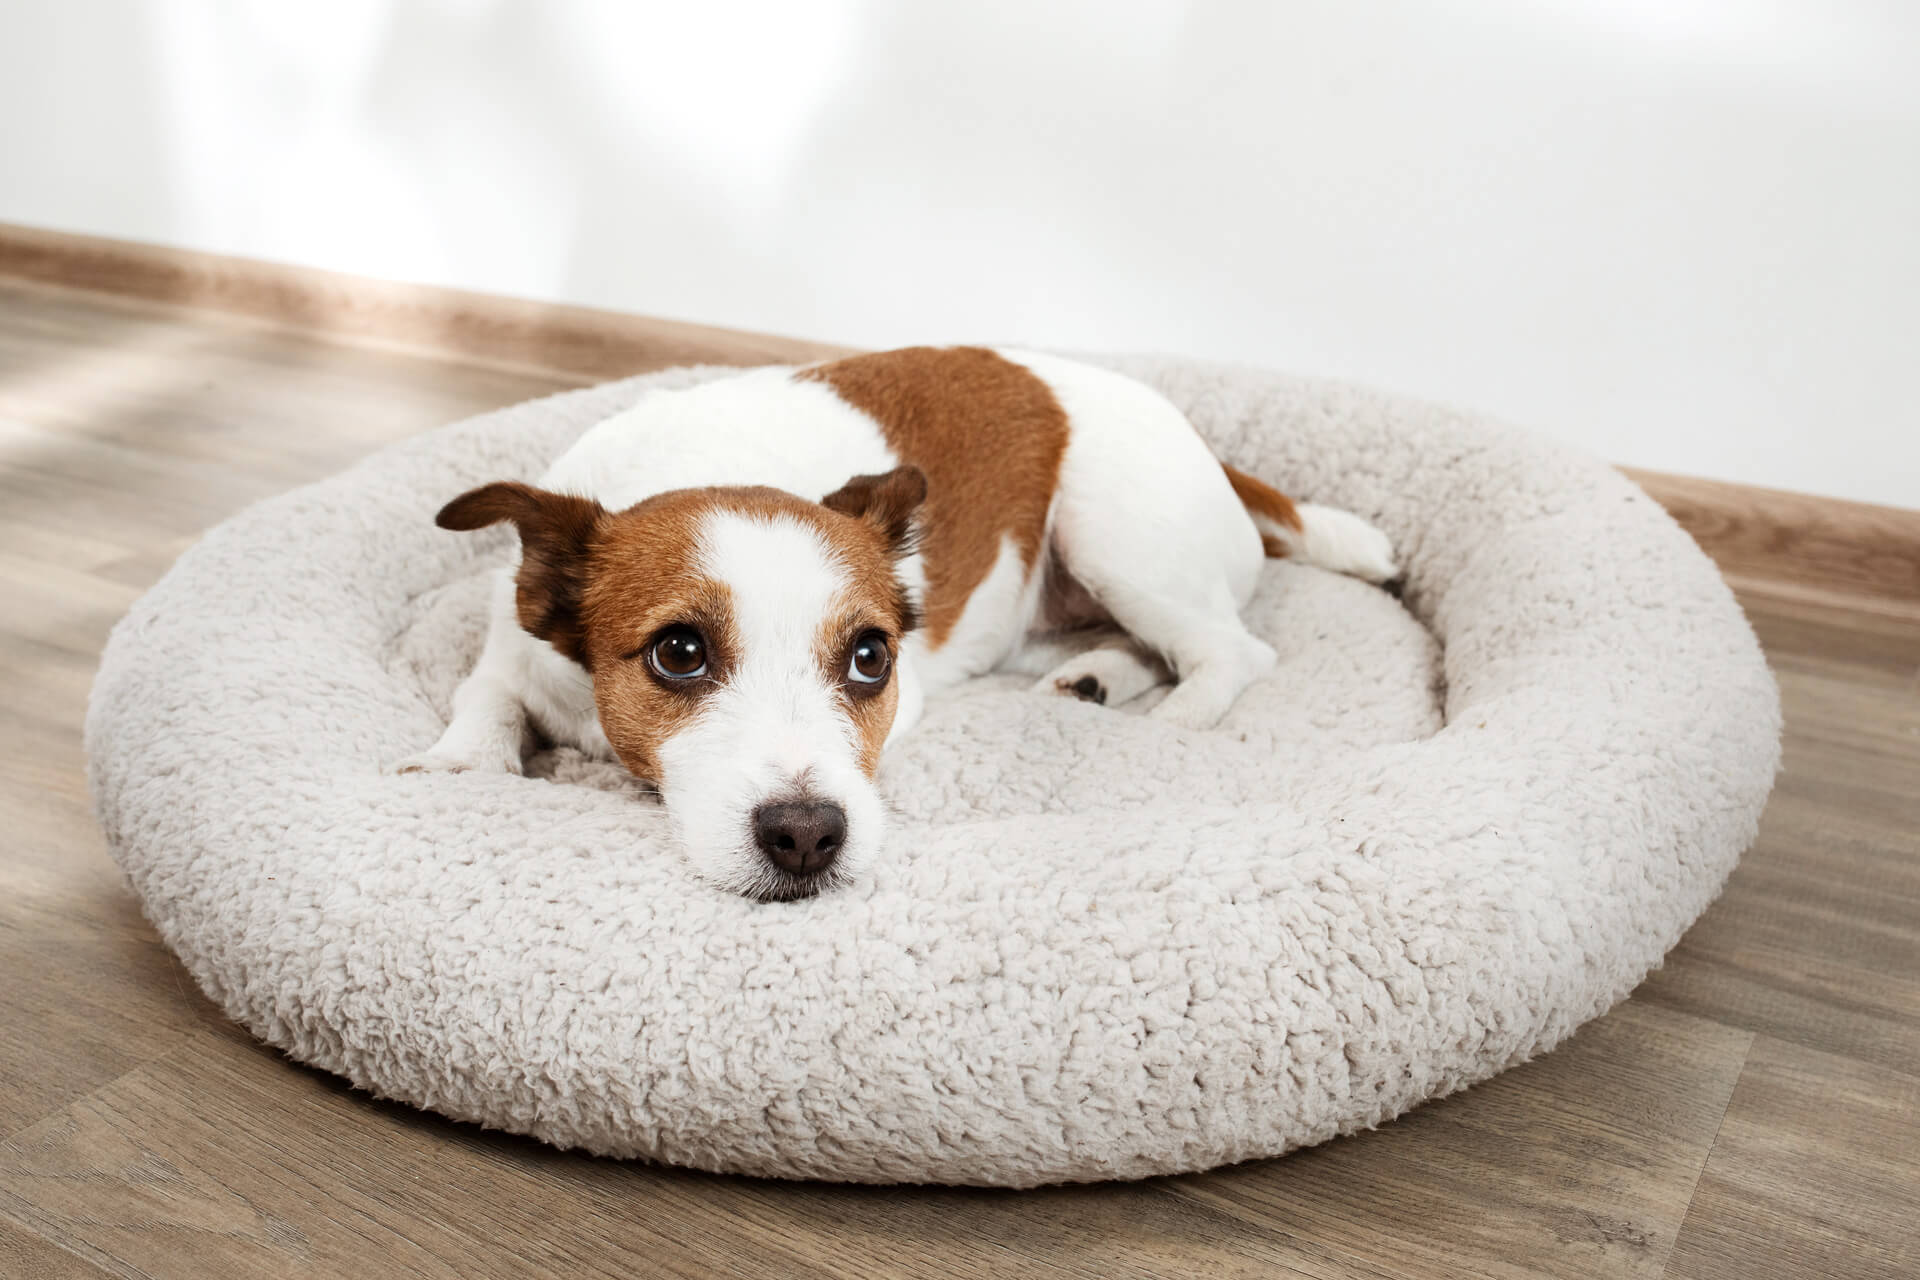 dog laying in dog bed looking sad - dog diarrhea